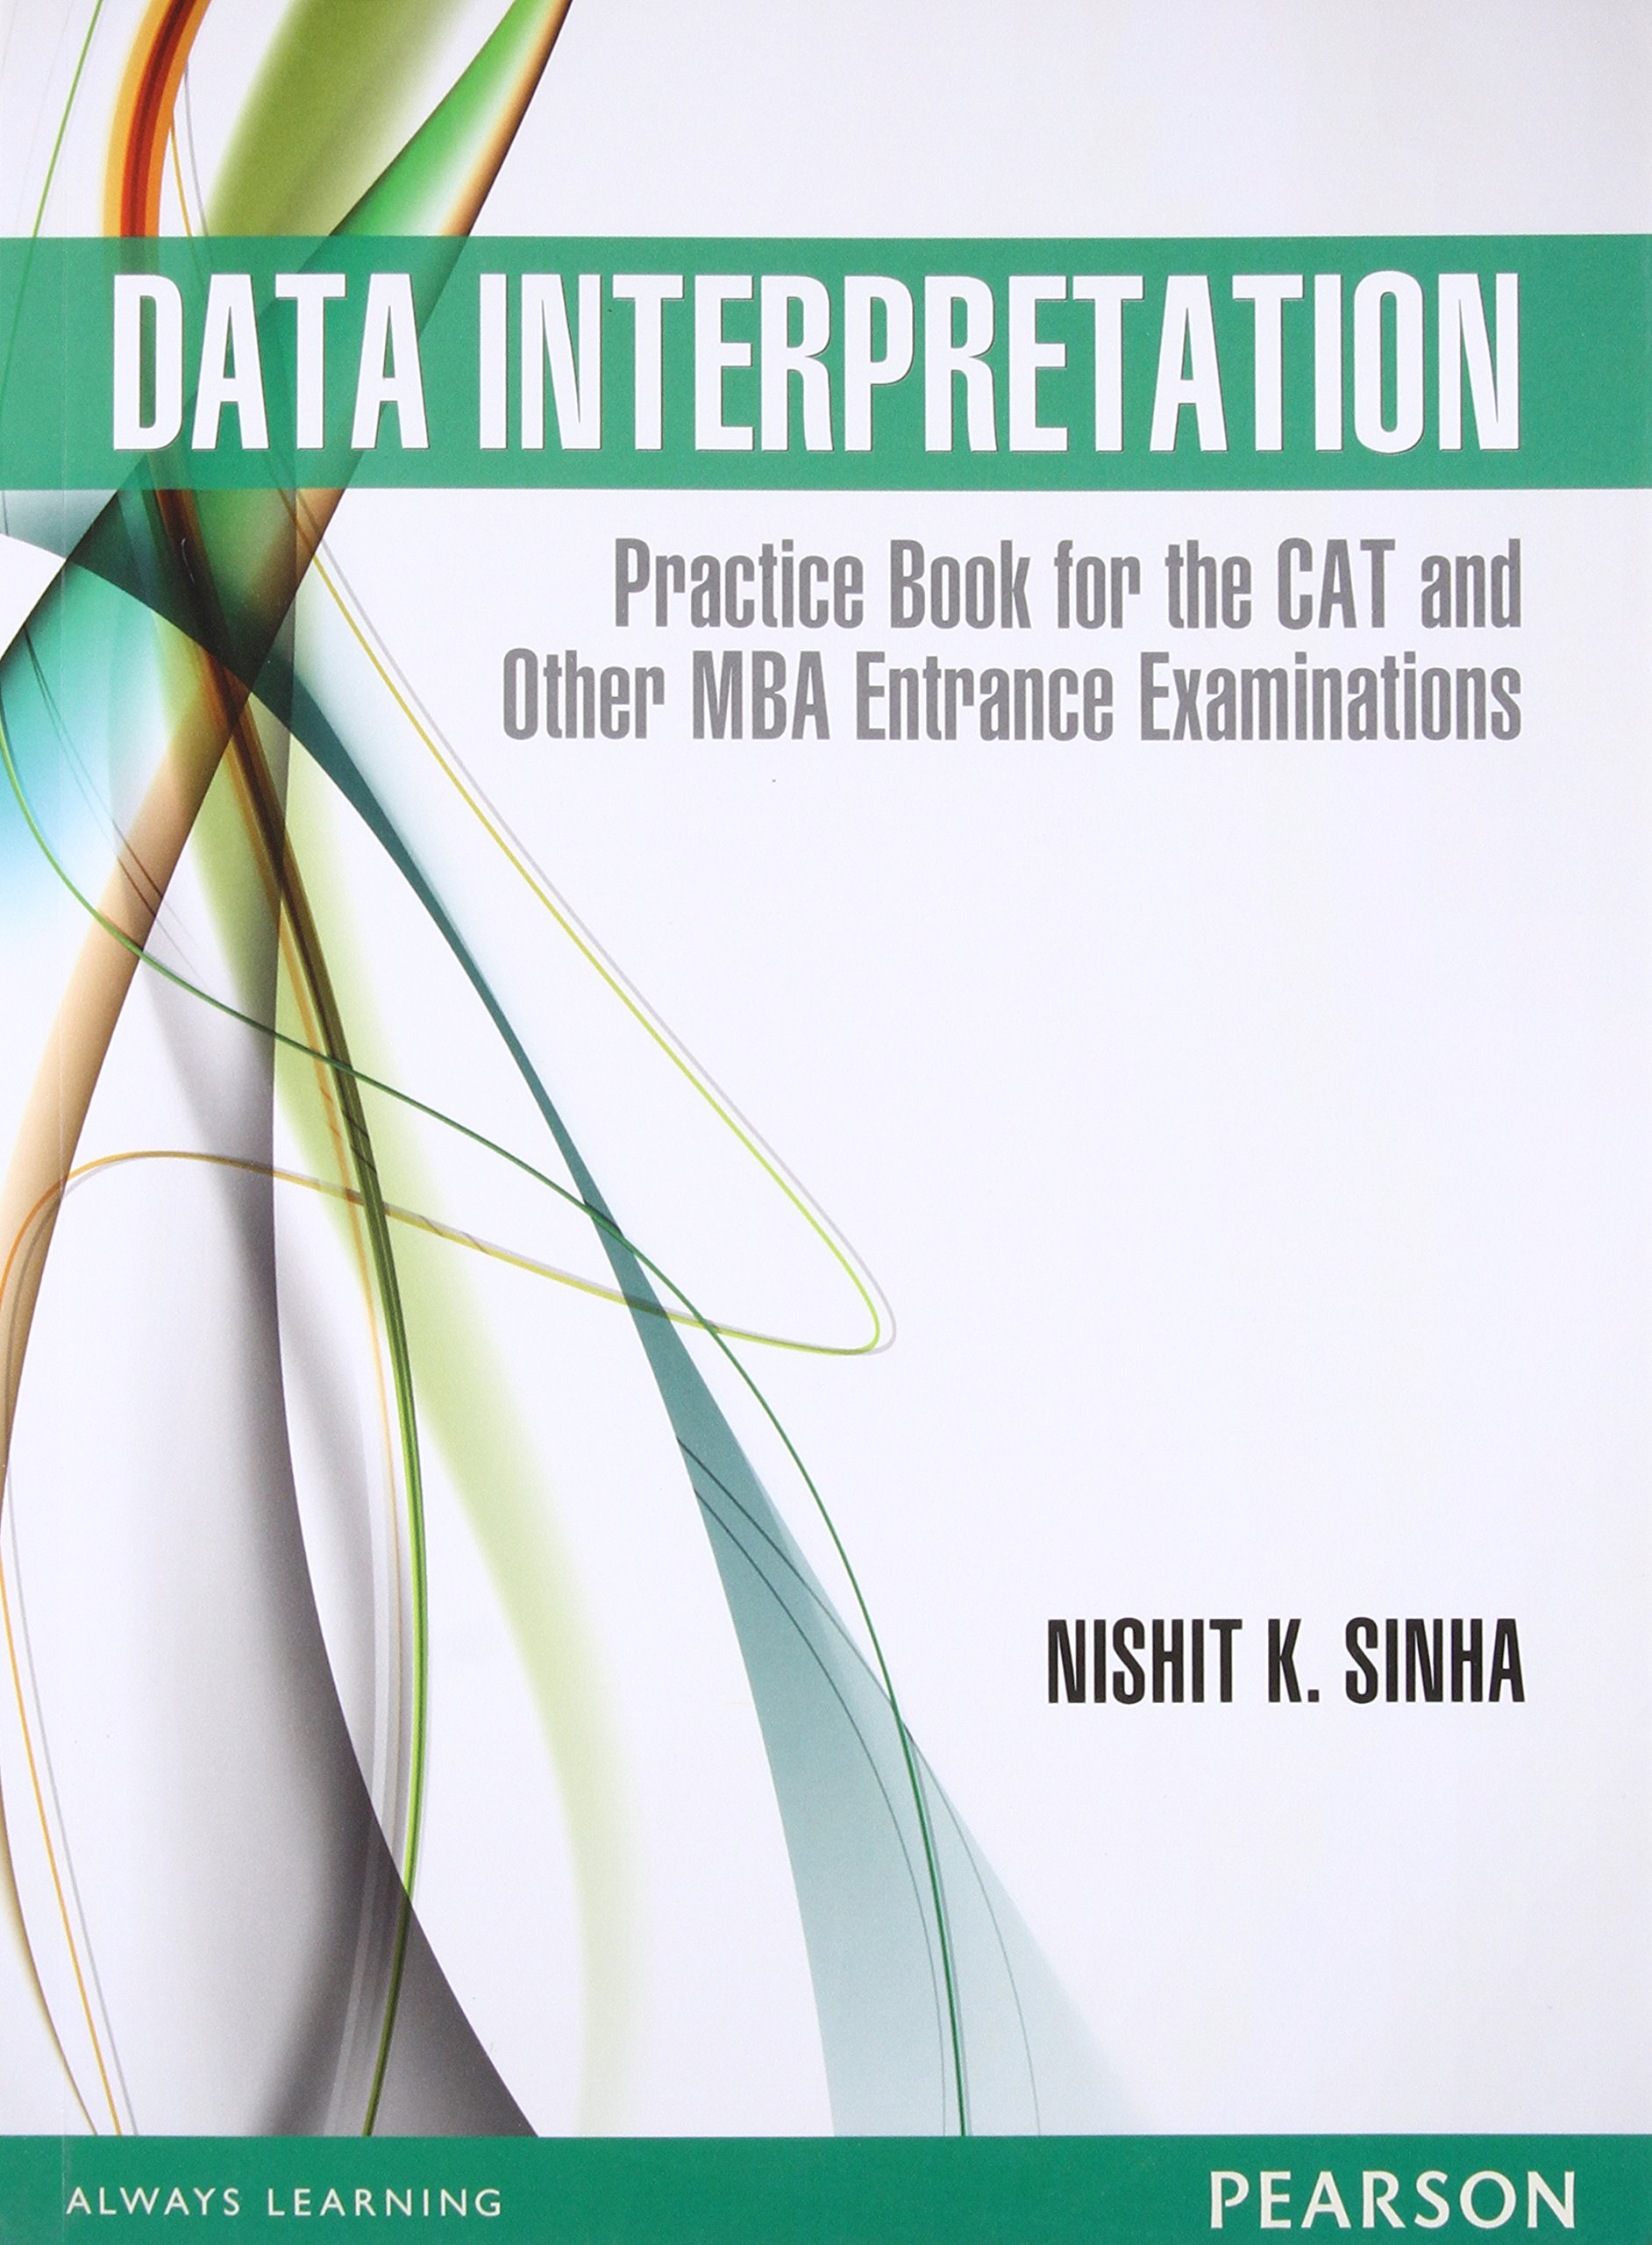 Data Interpretation: Practice Book for the CAT and Other MBA Entrance Examinations, 1e Paperback – 1 January 2013